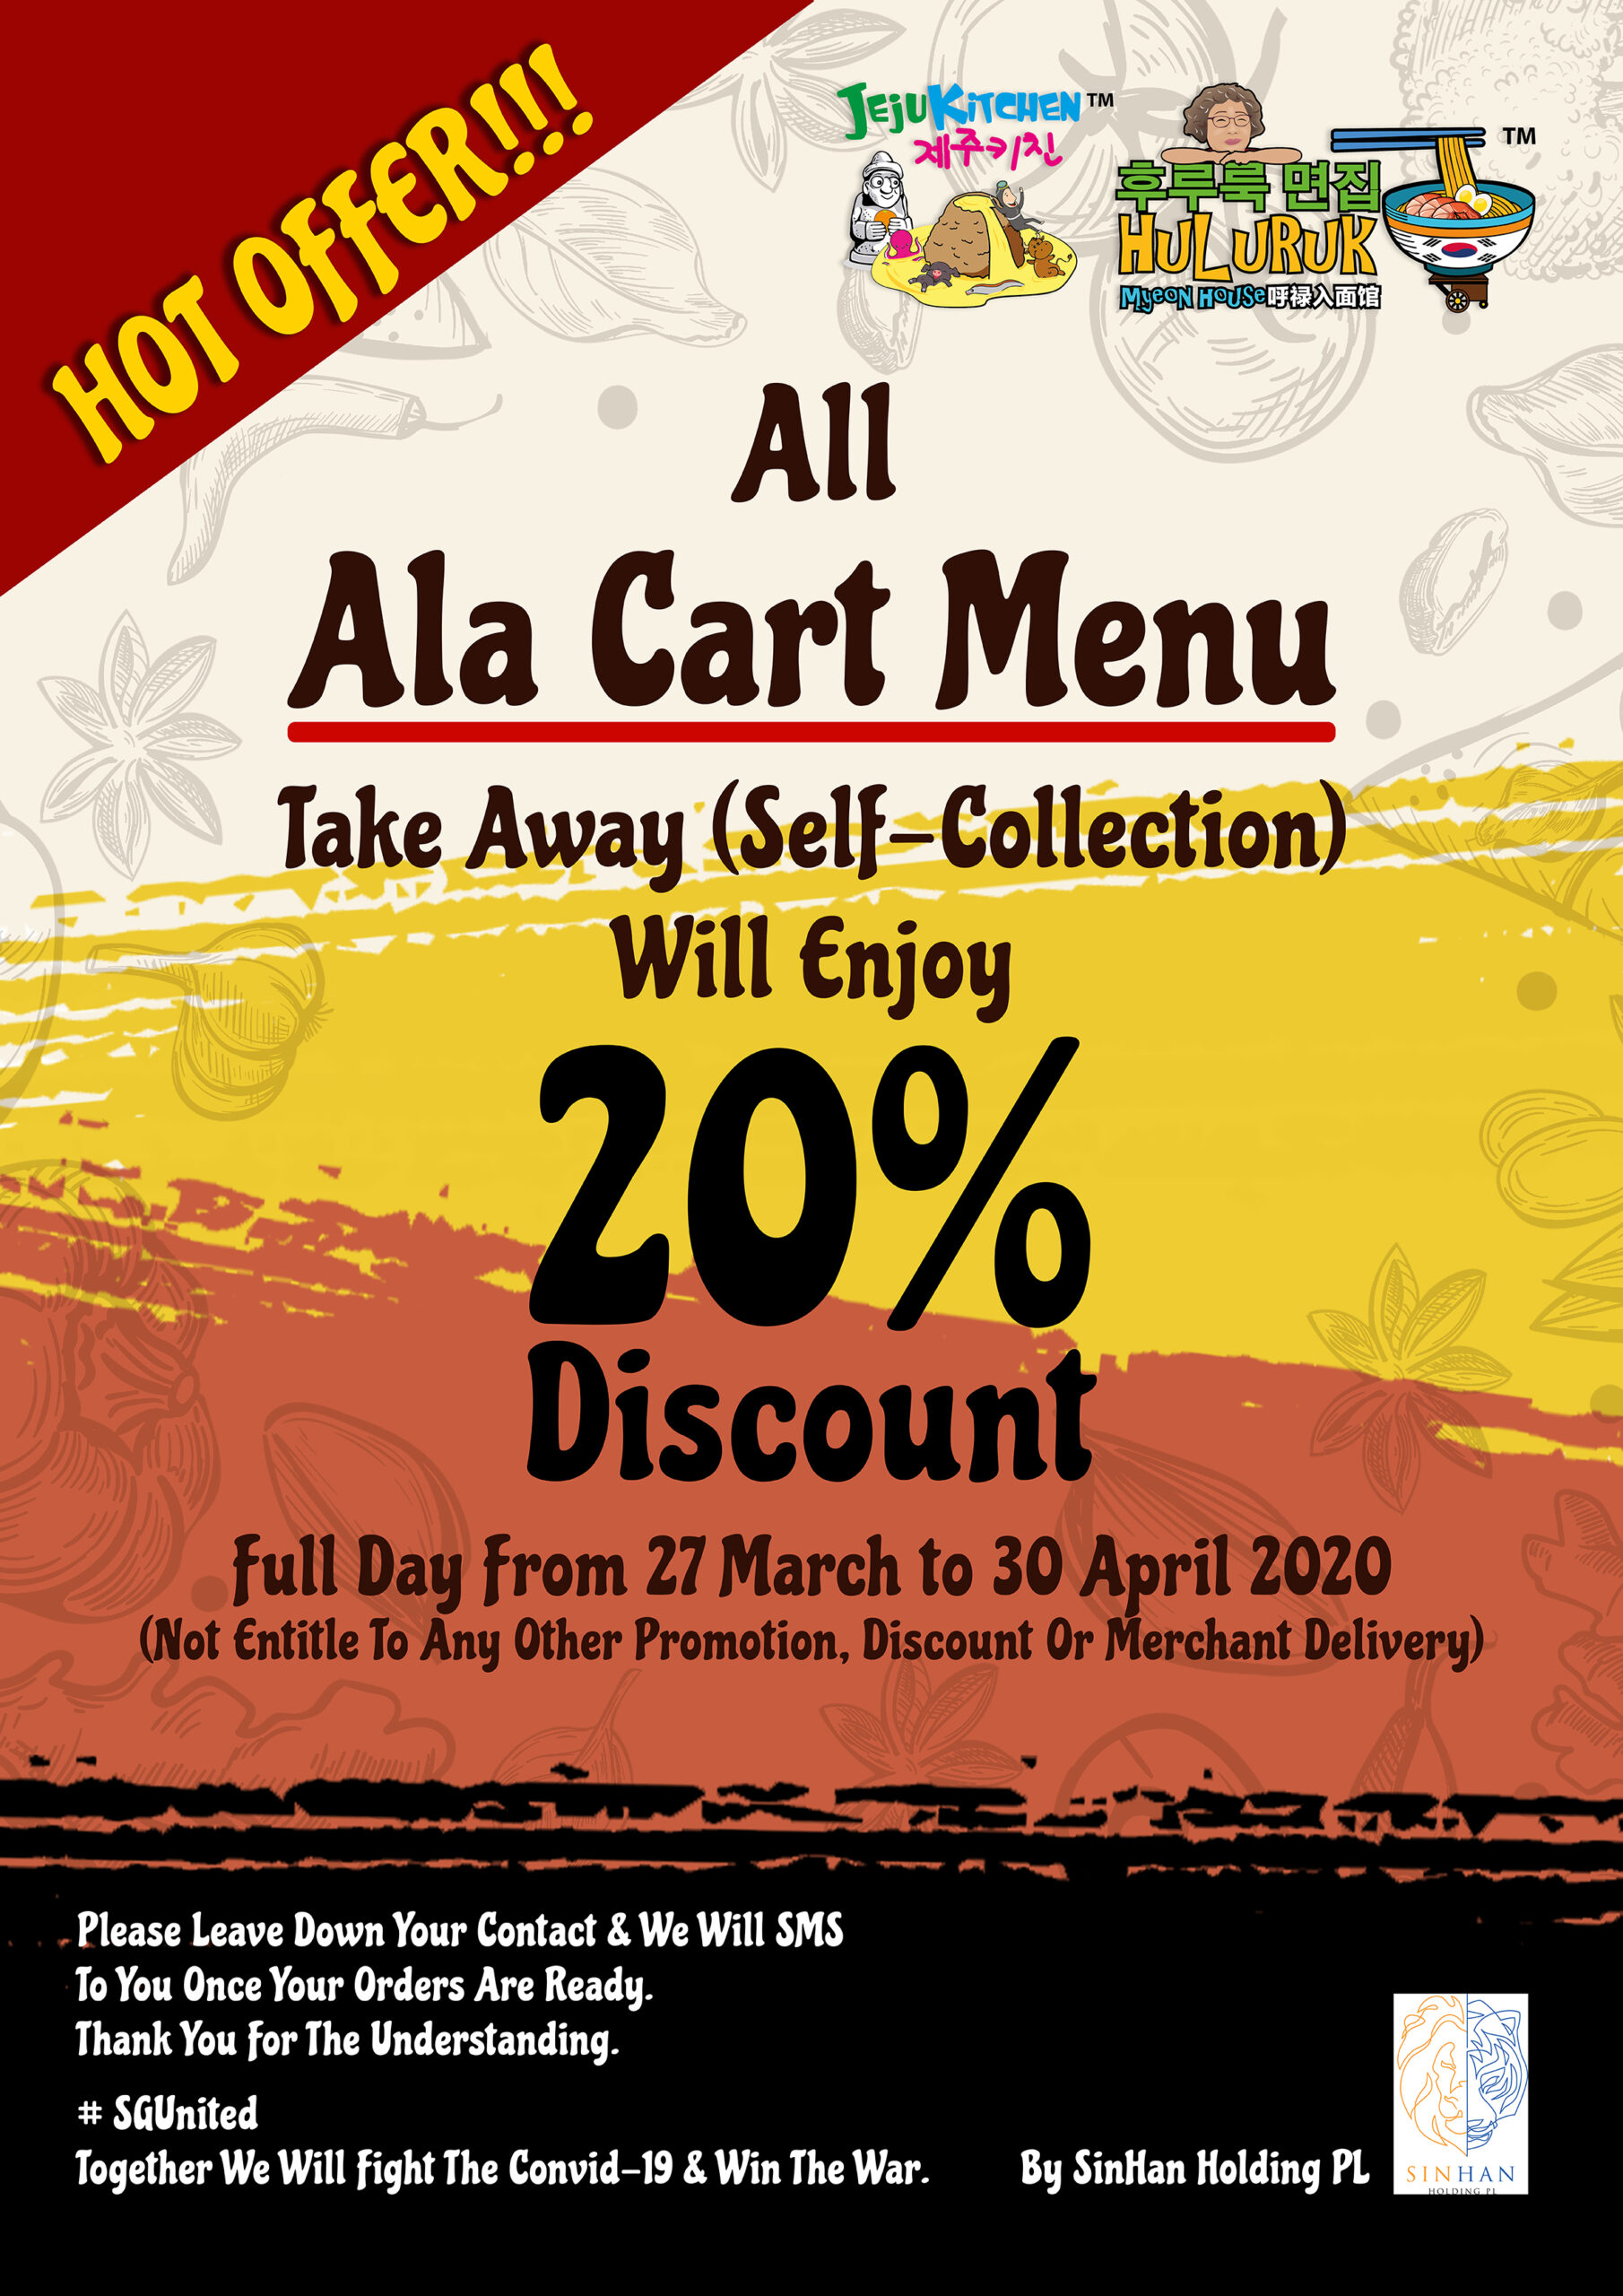 Take Away (Self Collection) Service With All Ala Cart Menu Will Enjoy 20% Discount!!